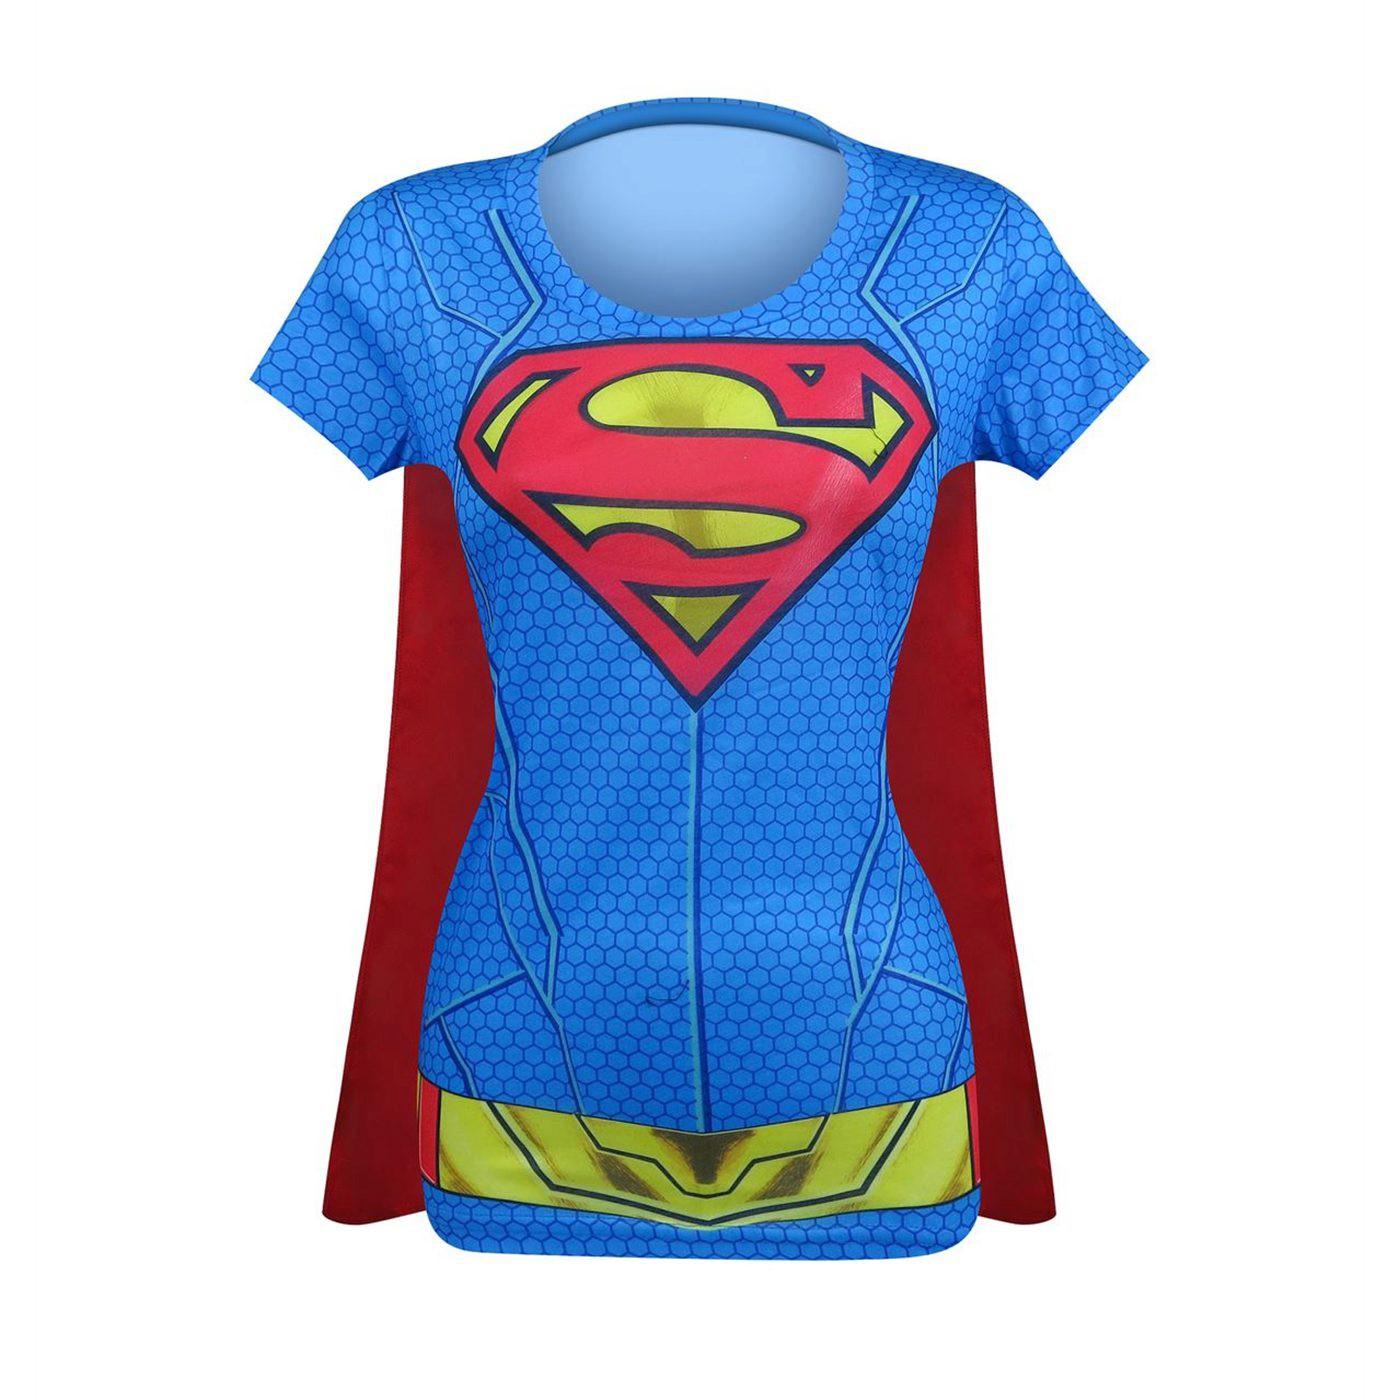 Supergirl Suit Up Women's Costume T-Shirt